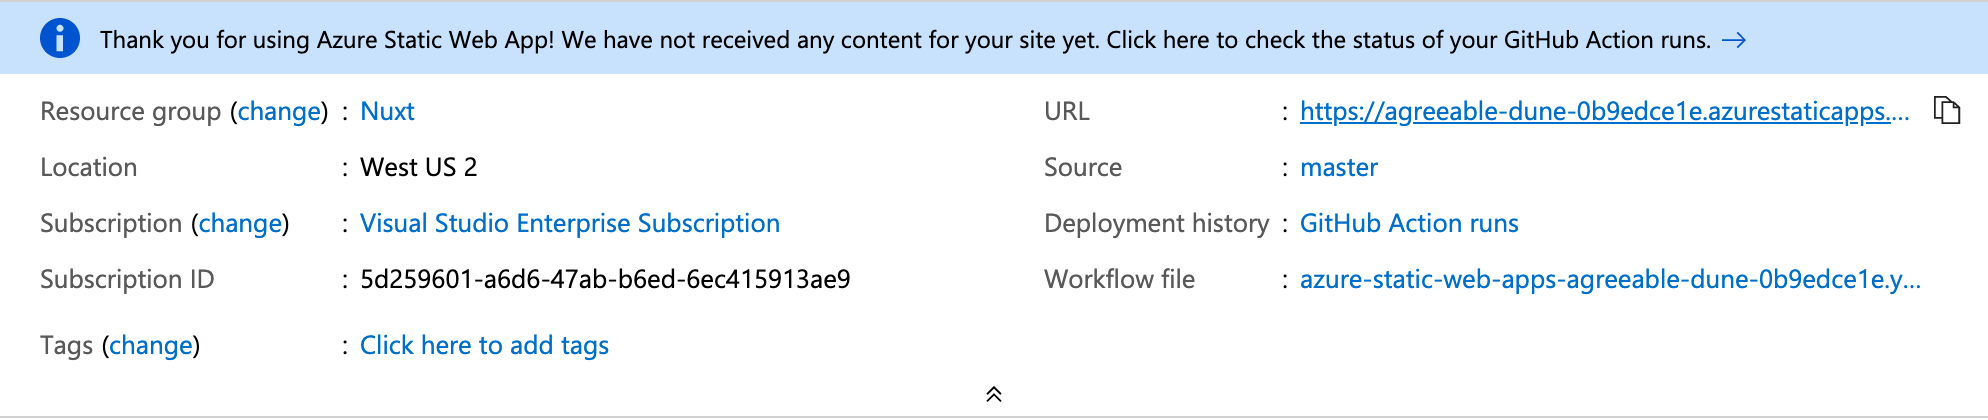 resource screen with url to your deployed app